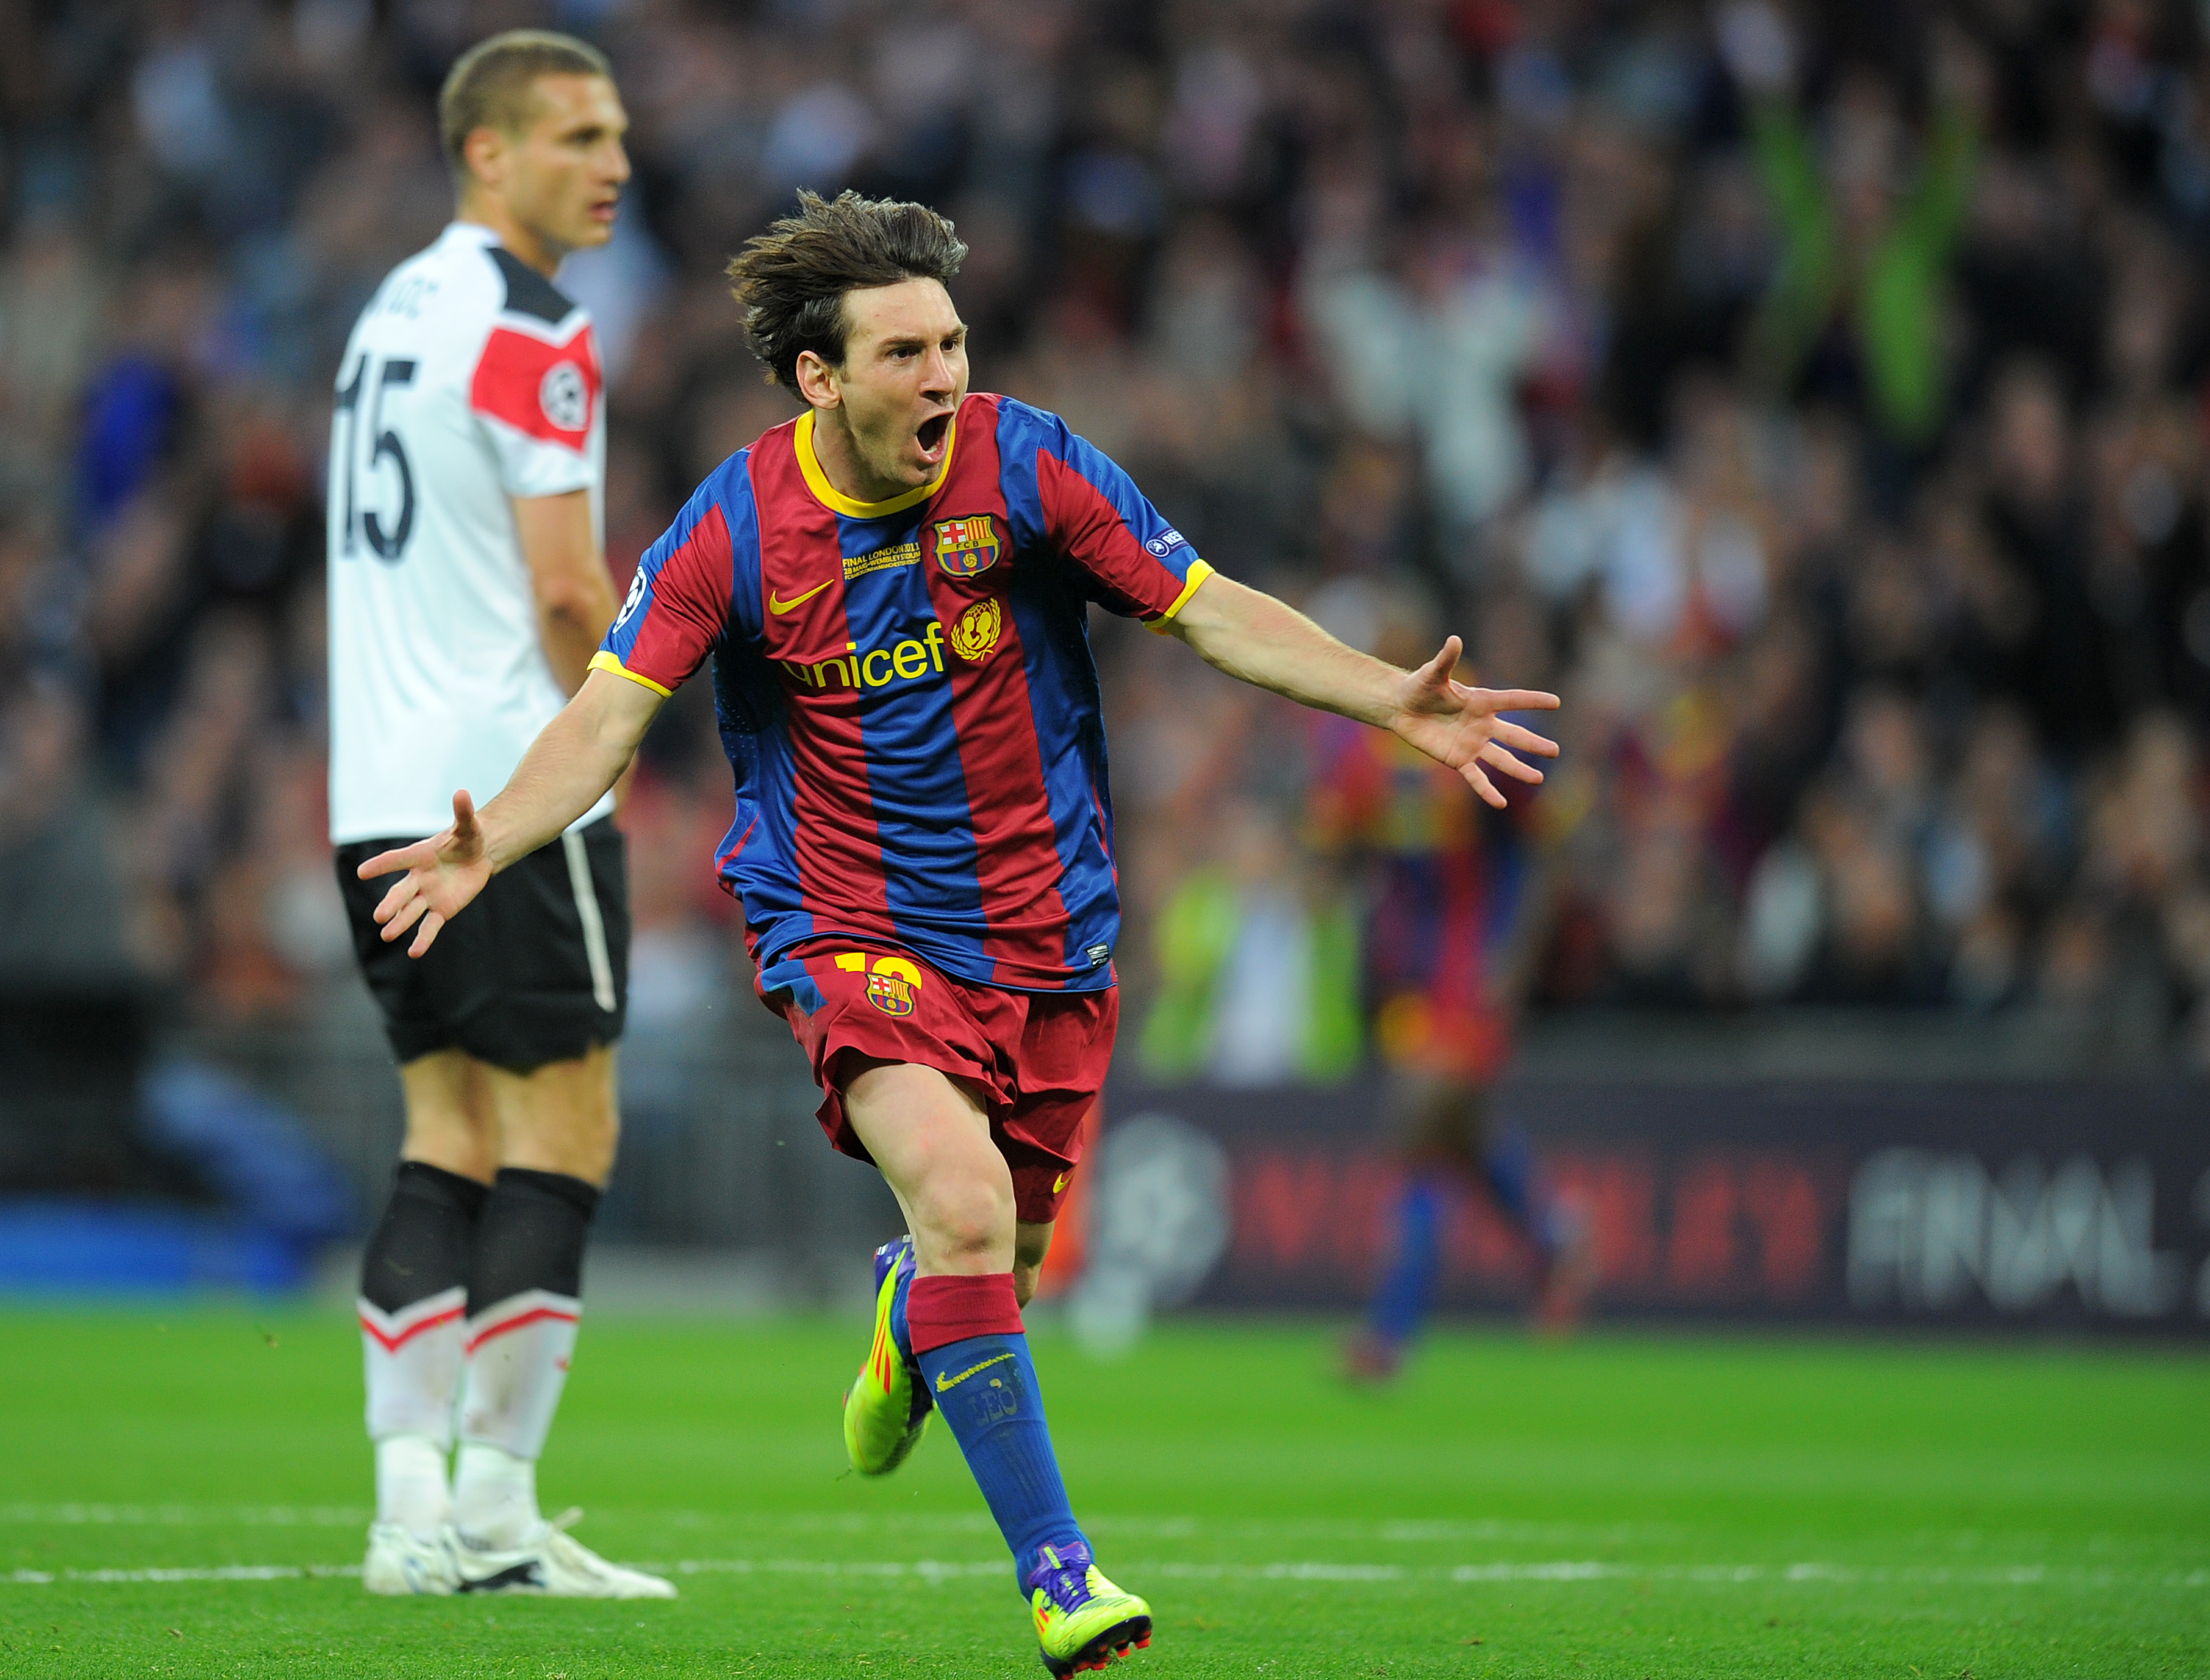 FC Barcelona - Manchester United (Final Champions League 2010-2011)